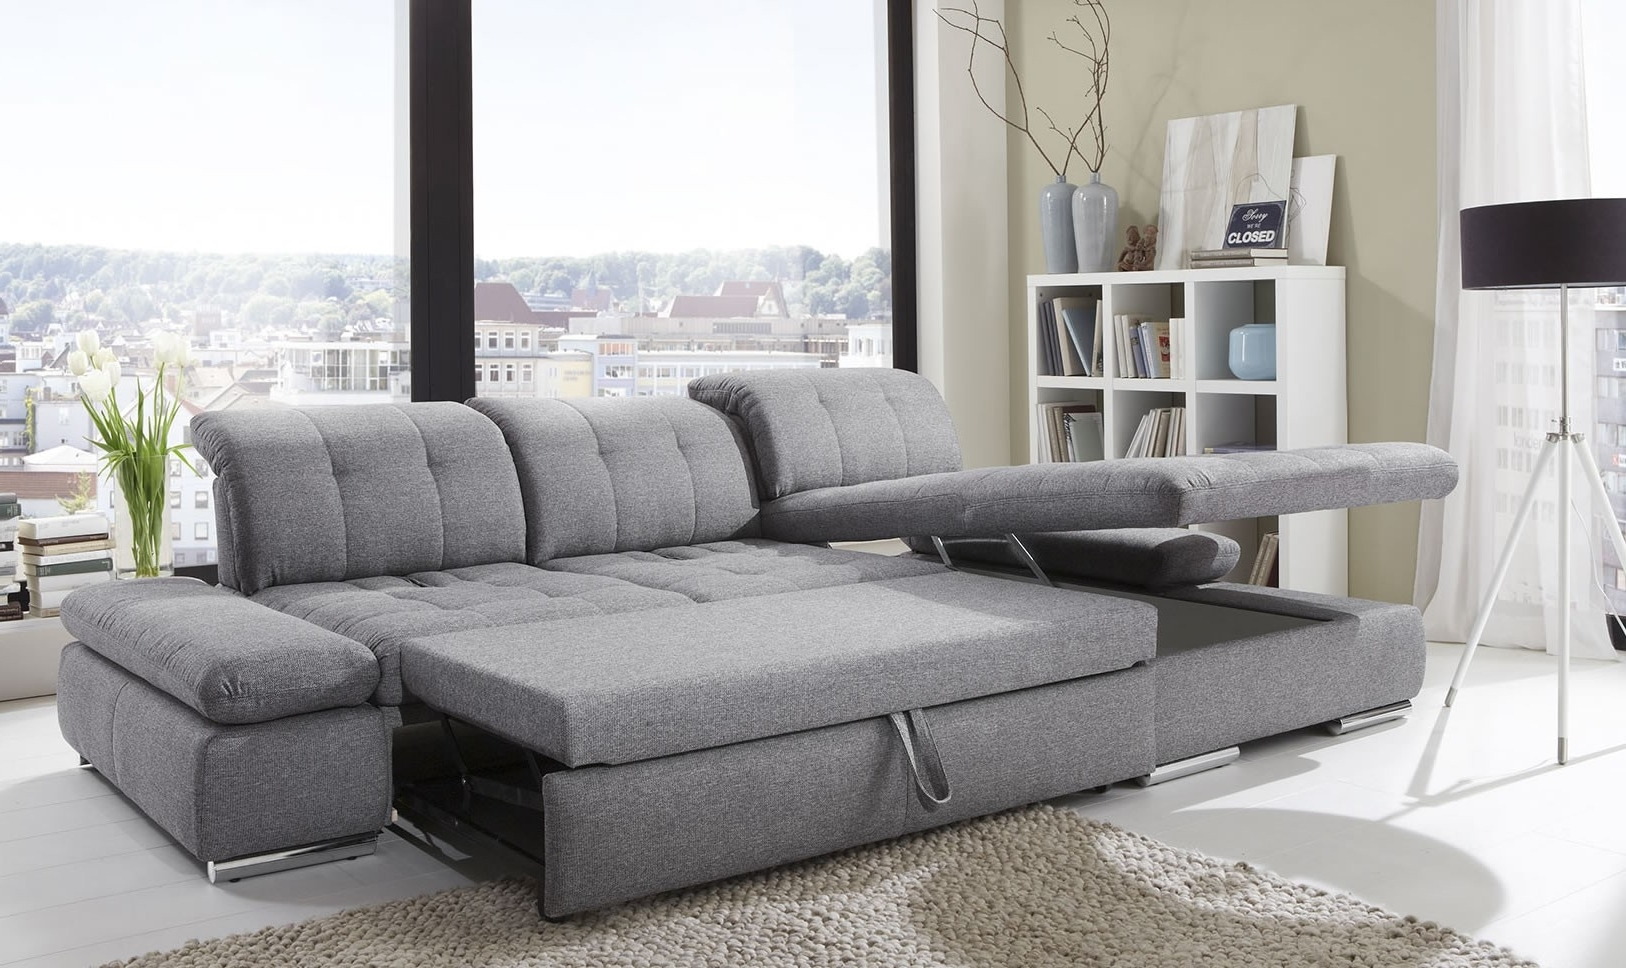 Chaise Sleeper Sofas With Well Known Alpine Sectional Sleeper Sofa, Left Arm Chaise Facing, Black (View 2 of 15)